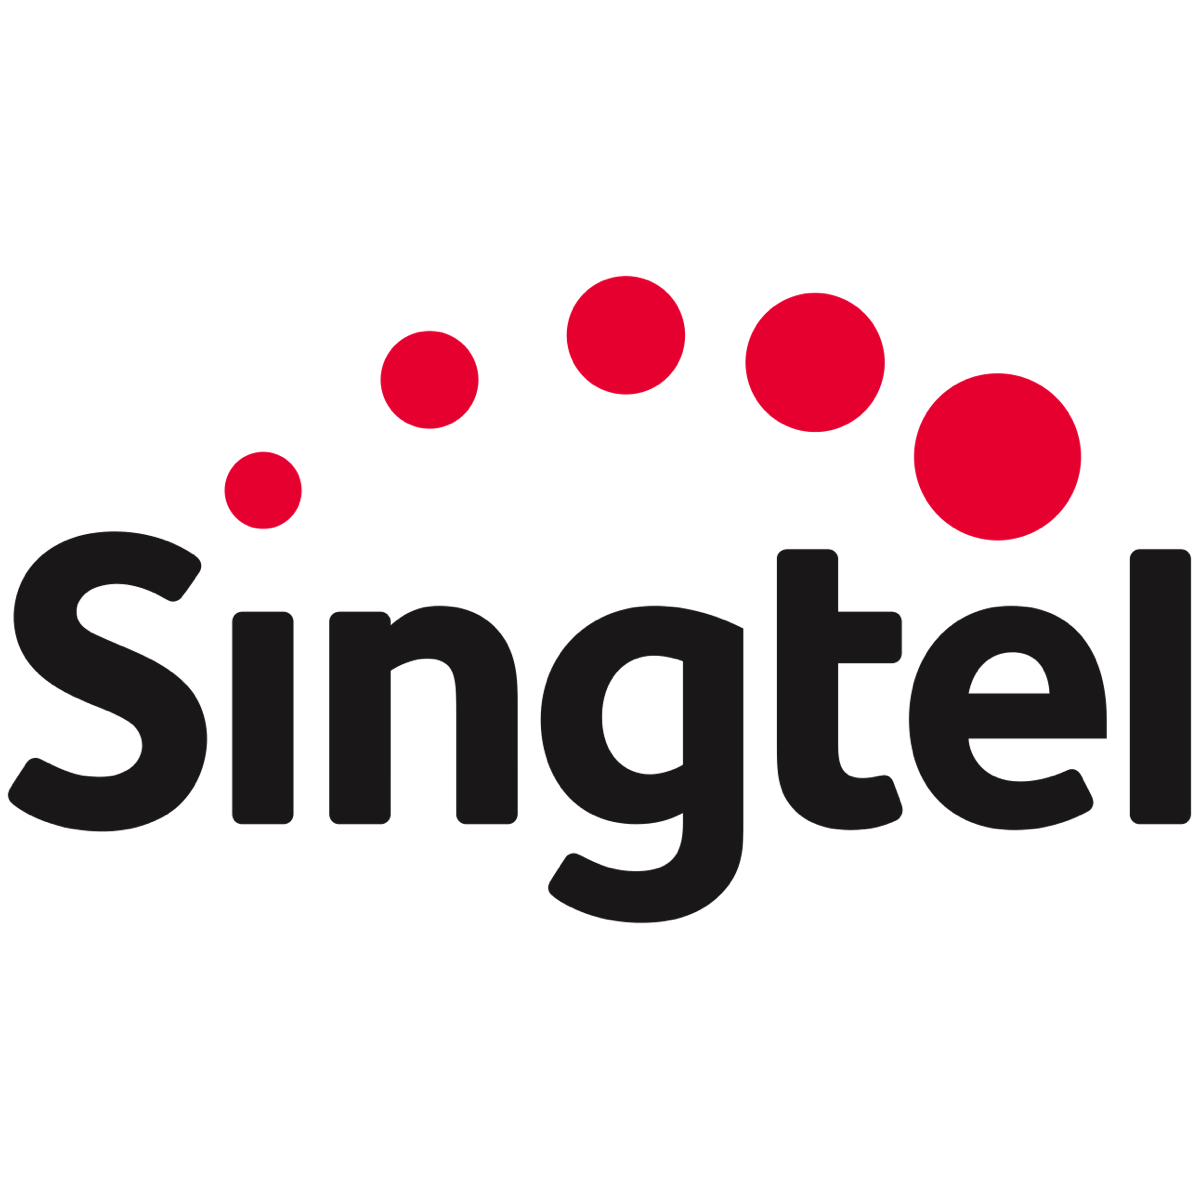 SingTel - CIMB Research 2017-09-22: Yields And Safety In FY18F; Growth From FY19F